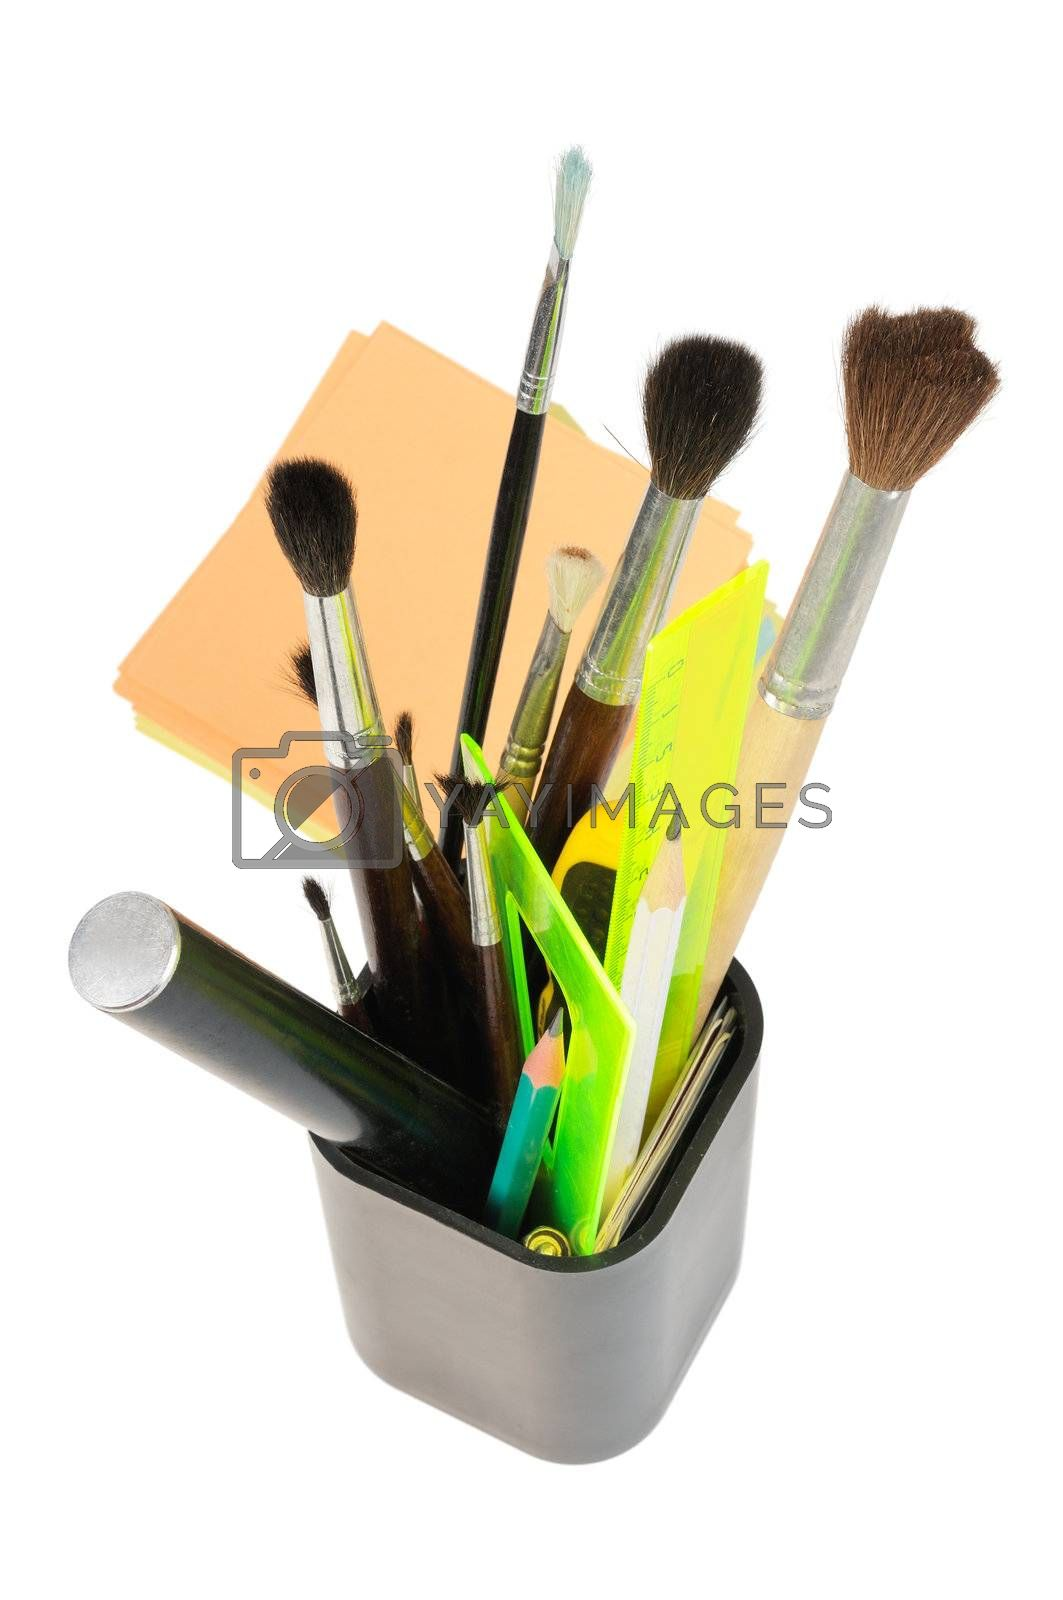 A box with stationery, pens, brushes, rulers. Isolated on white.